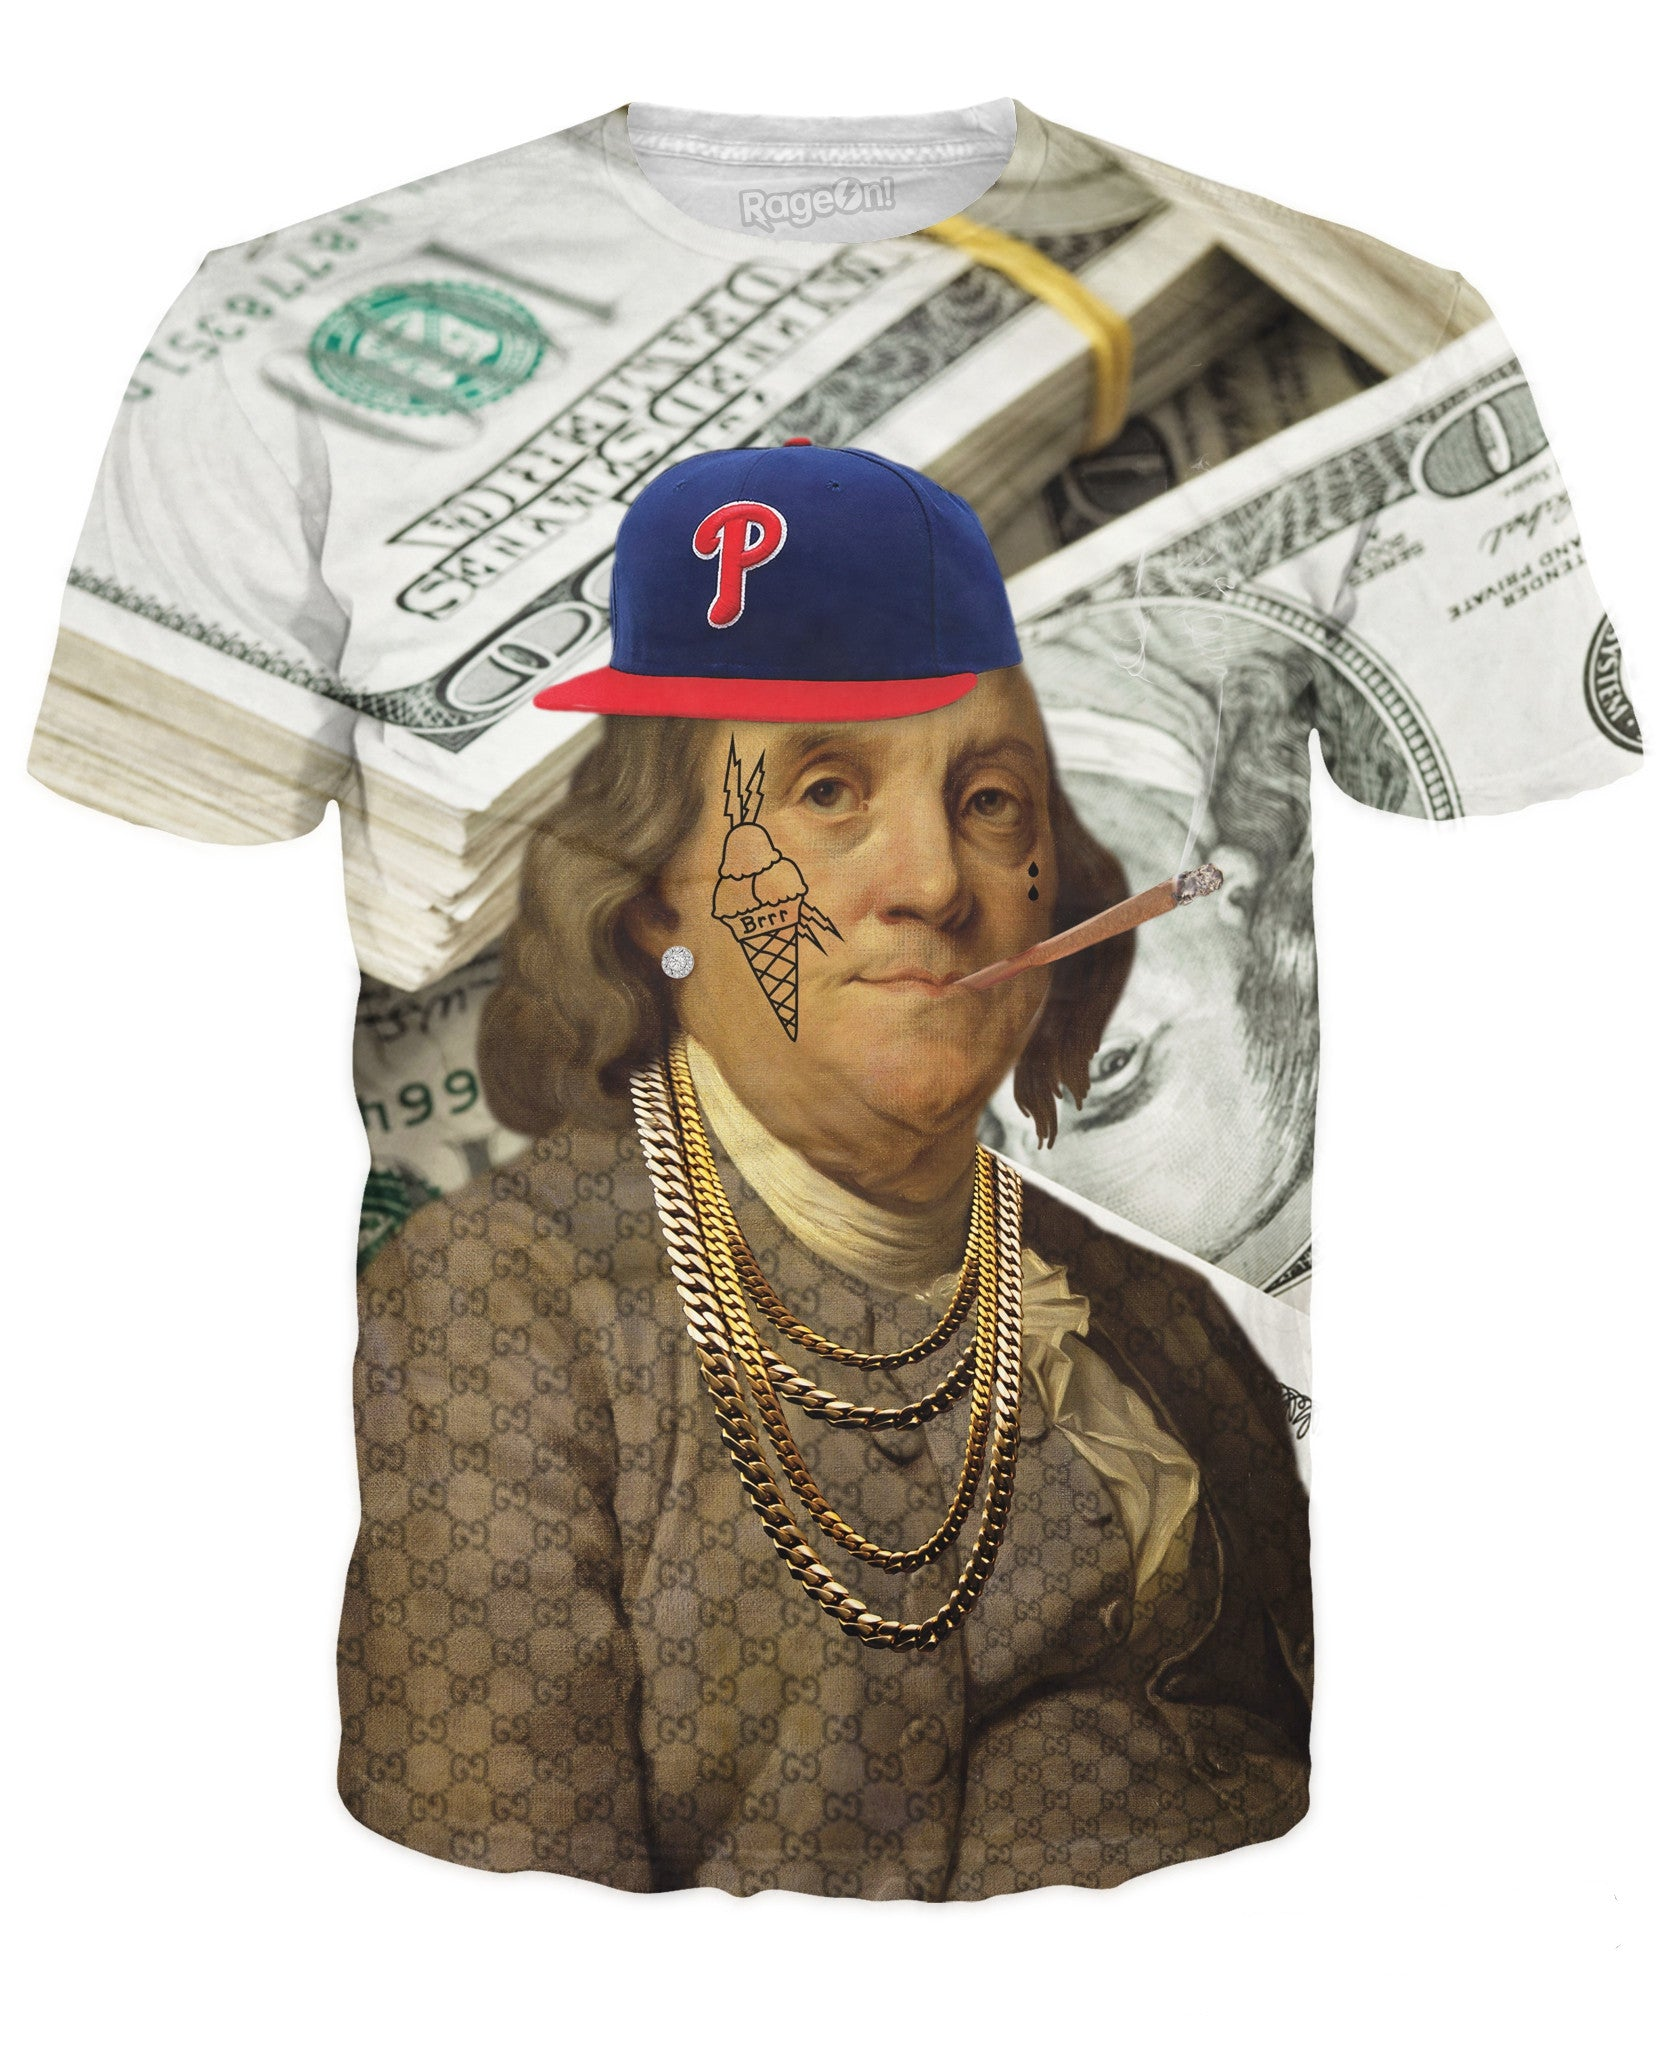 All About the Benjamins T-Shirt - TShirtsRUS.co